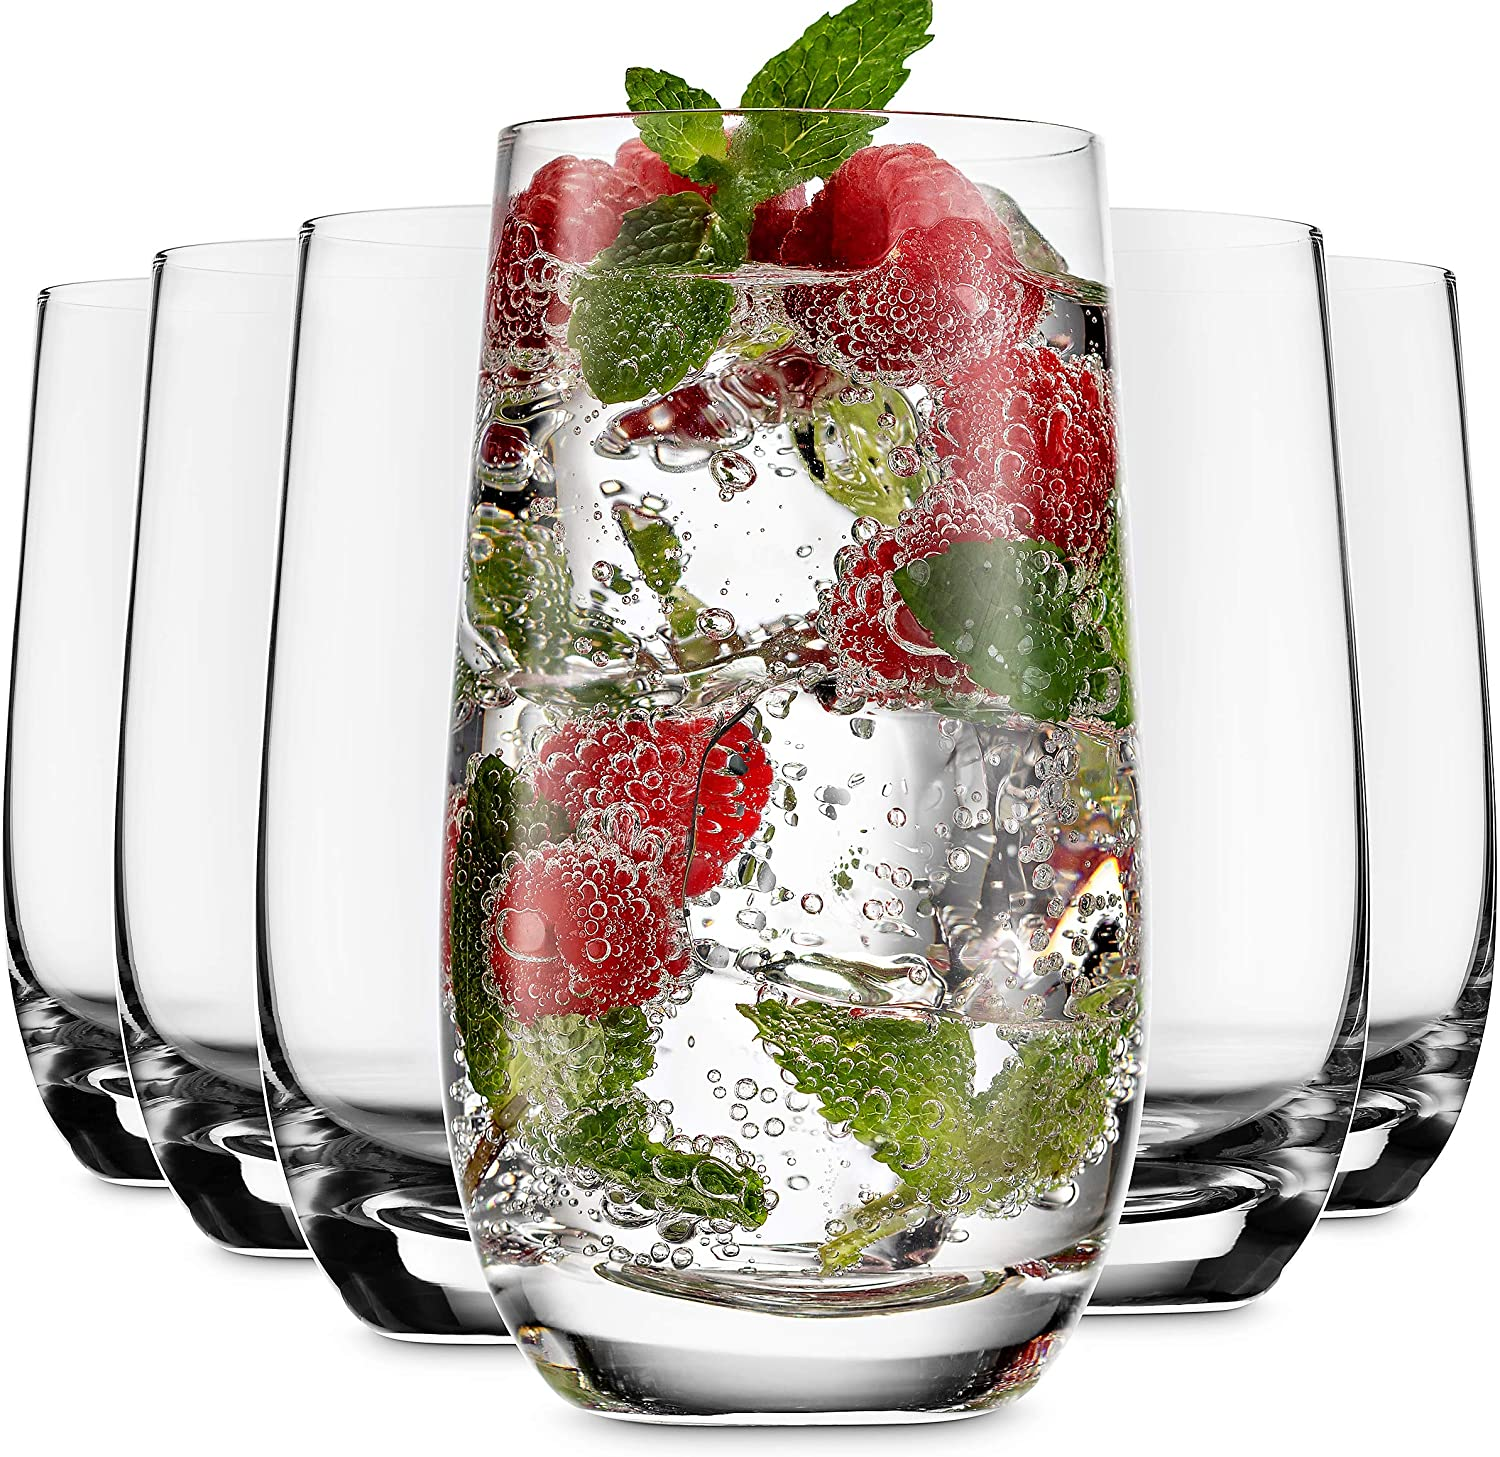 MITBAK 13- OZ Highball Glasses (Set of 6) | Lead Free Drinking Glasses Tumblers for Mixed Drinks, Water, Juice, beer, cocktail | Glassware Set, Excellent Gift | Made in slovakia